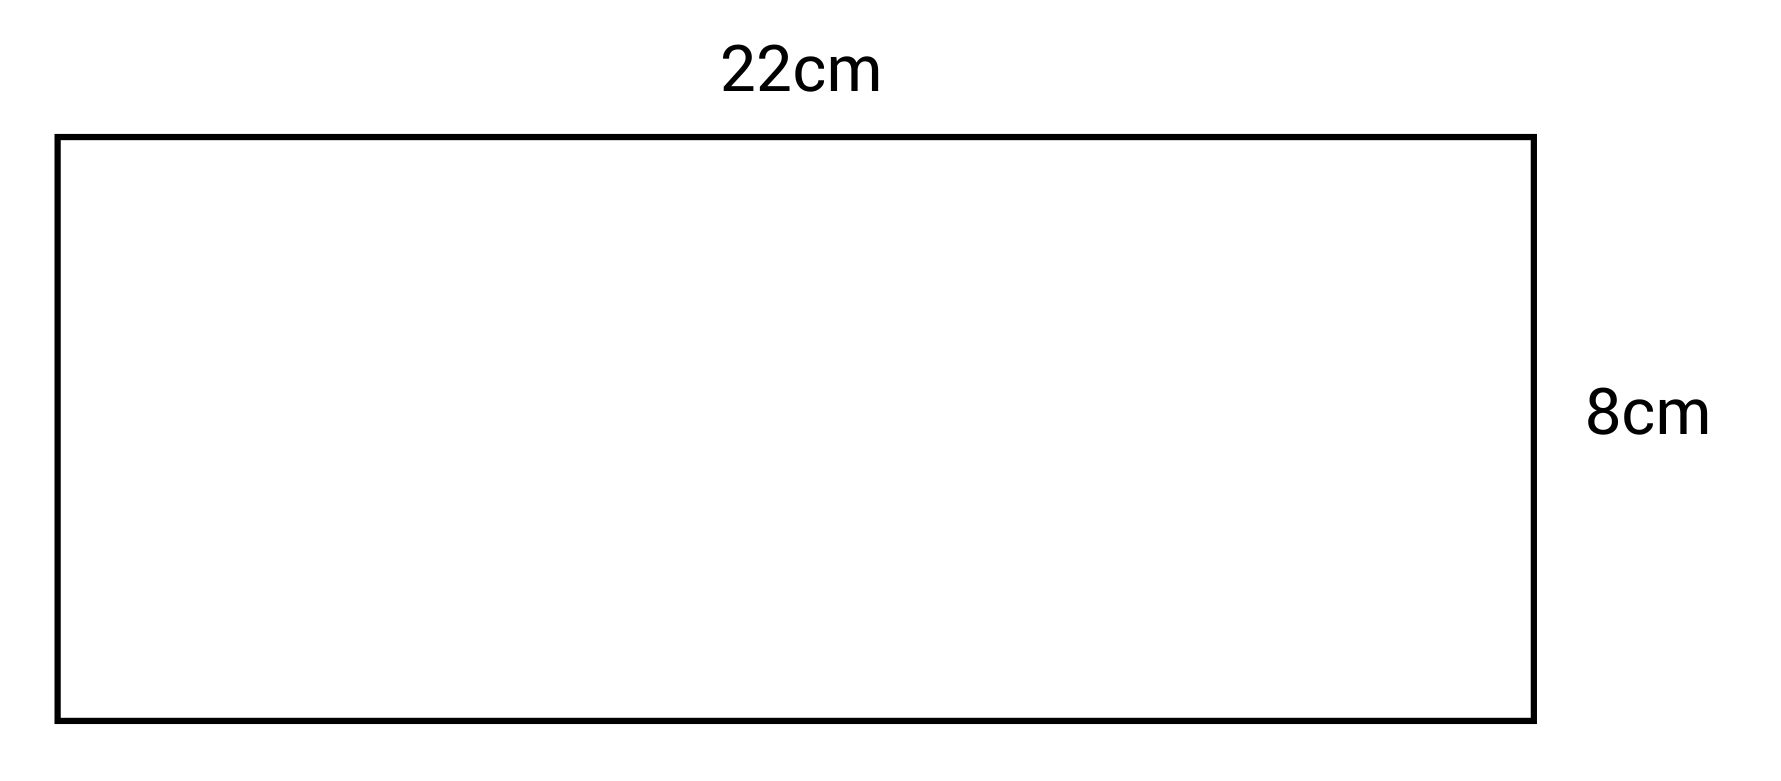 22 by 8cm rectangle